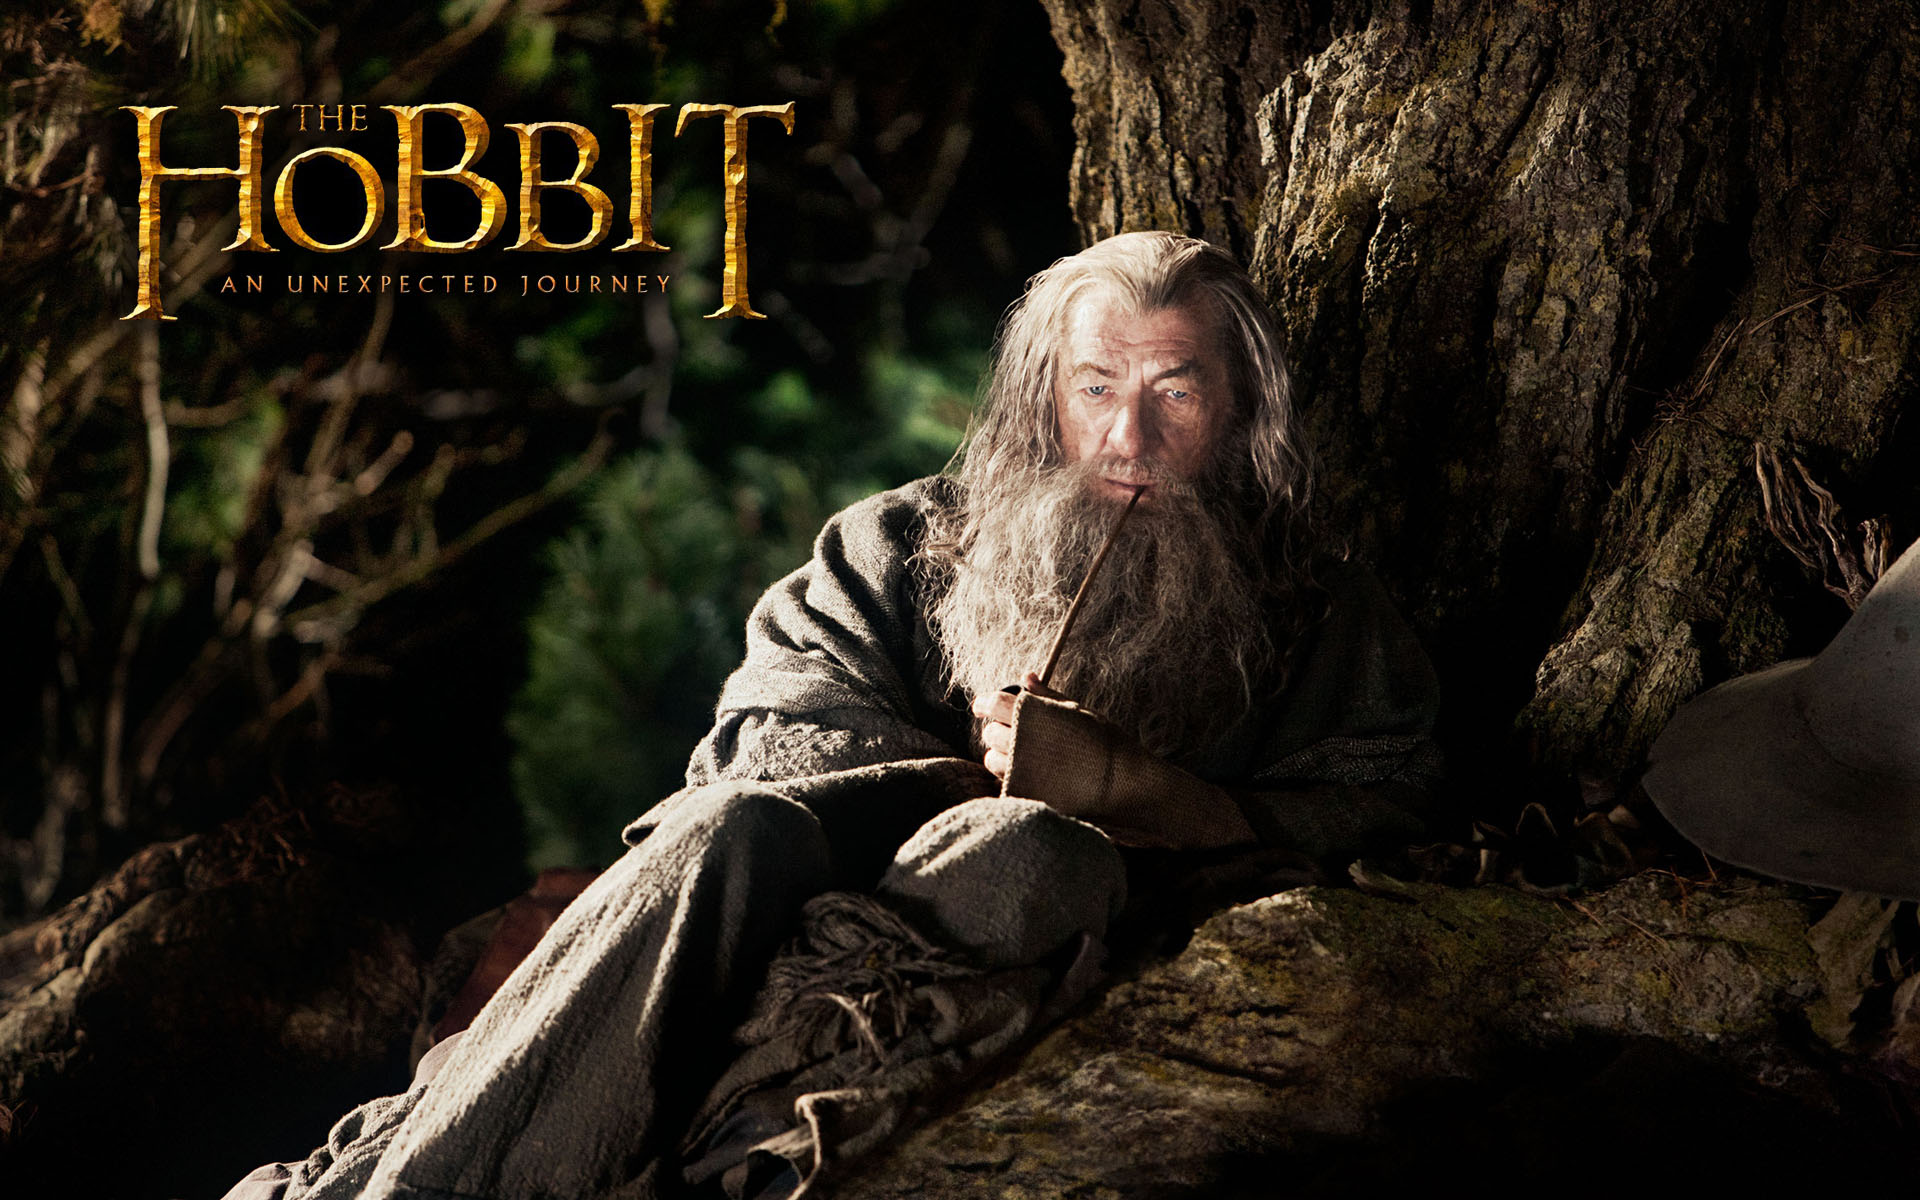 The Hobbit Wallpaper 1920x1200 Wallpapers 1920x1200 Wallpapers 1920x1200